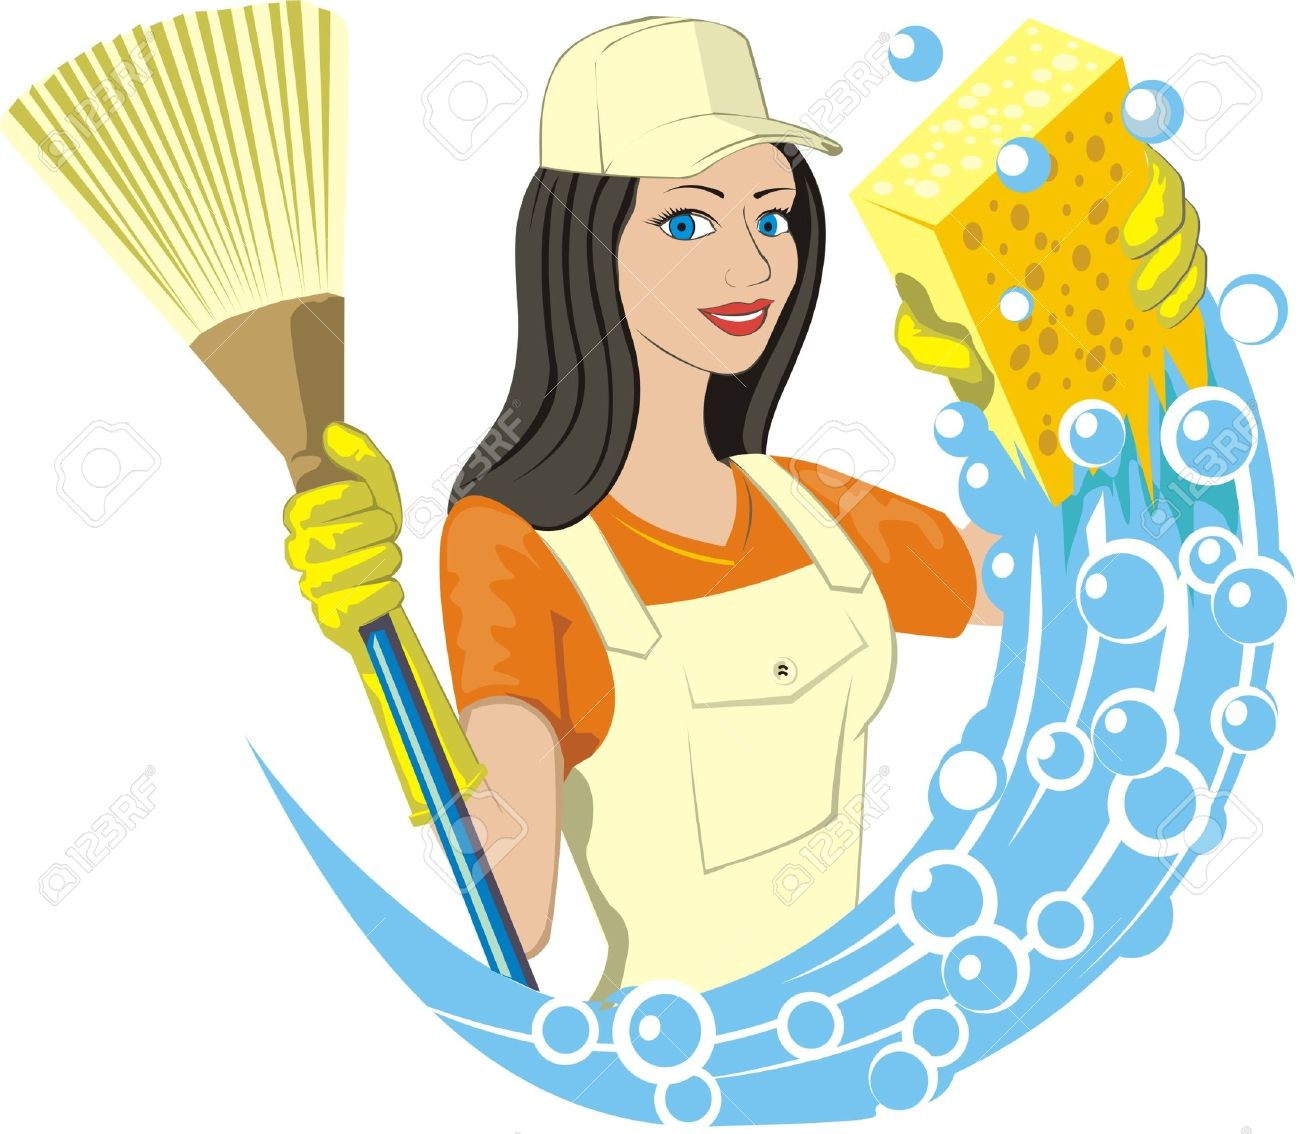 Woman Cleaning Logo Cleaning Service Girl Keeps